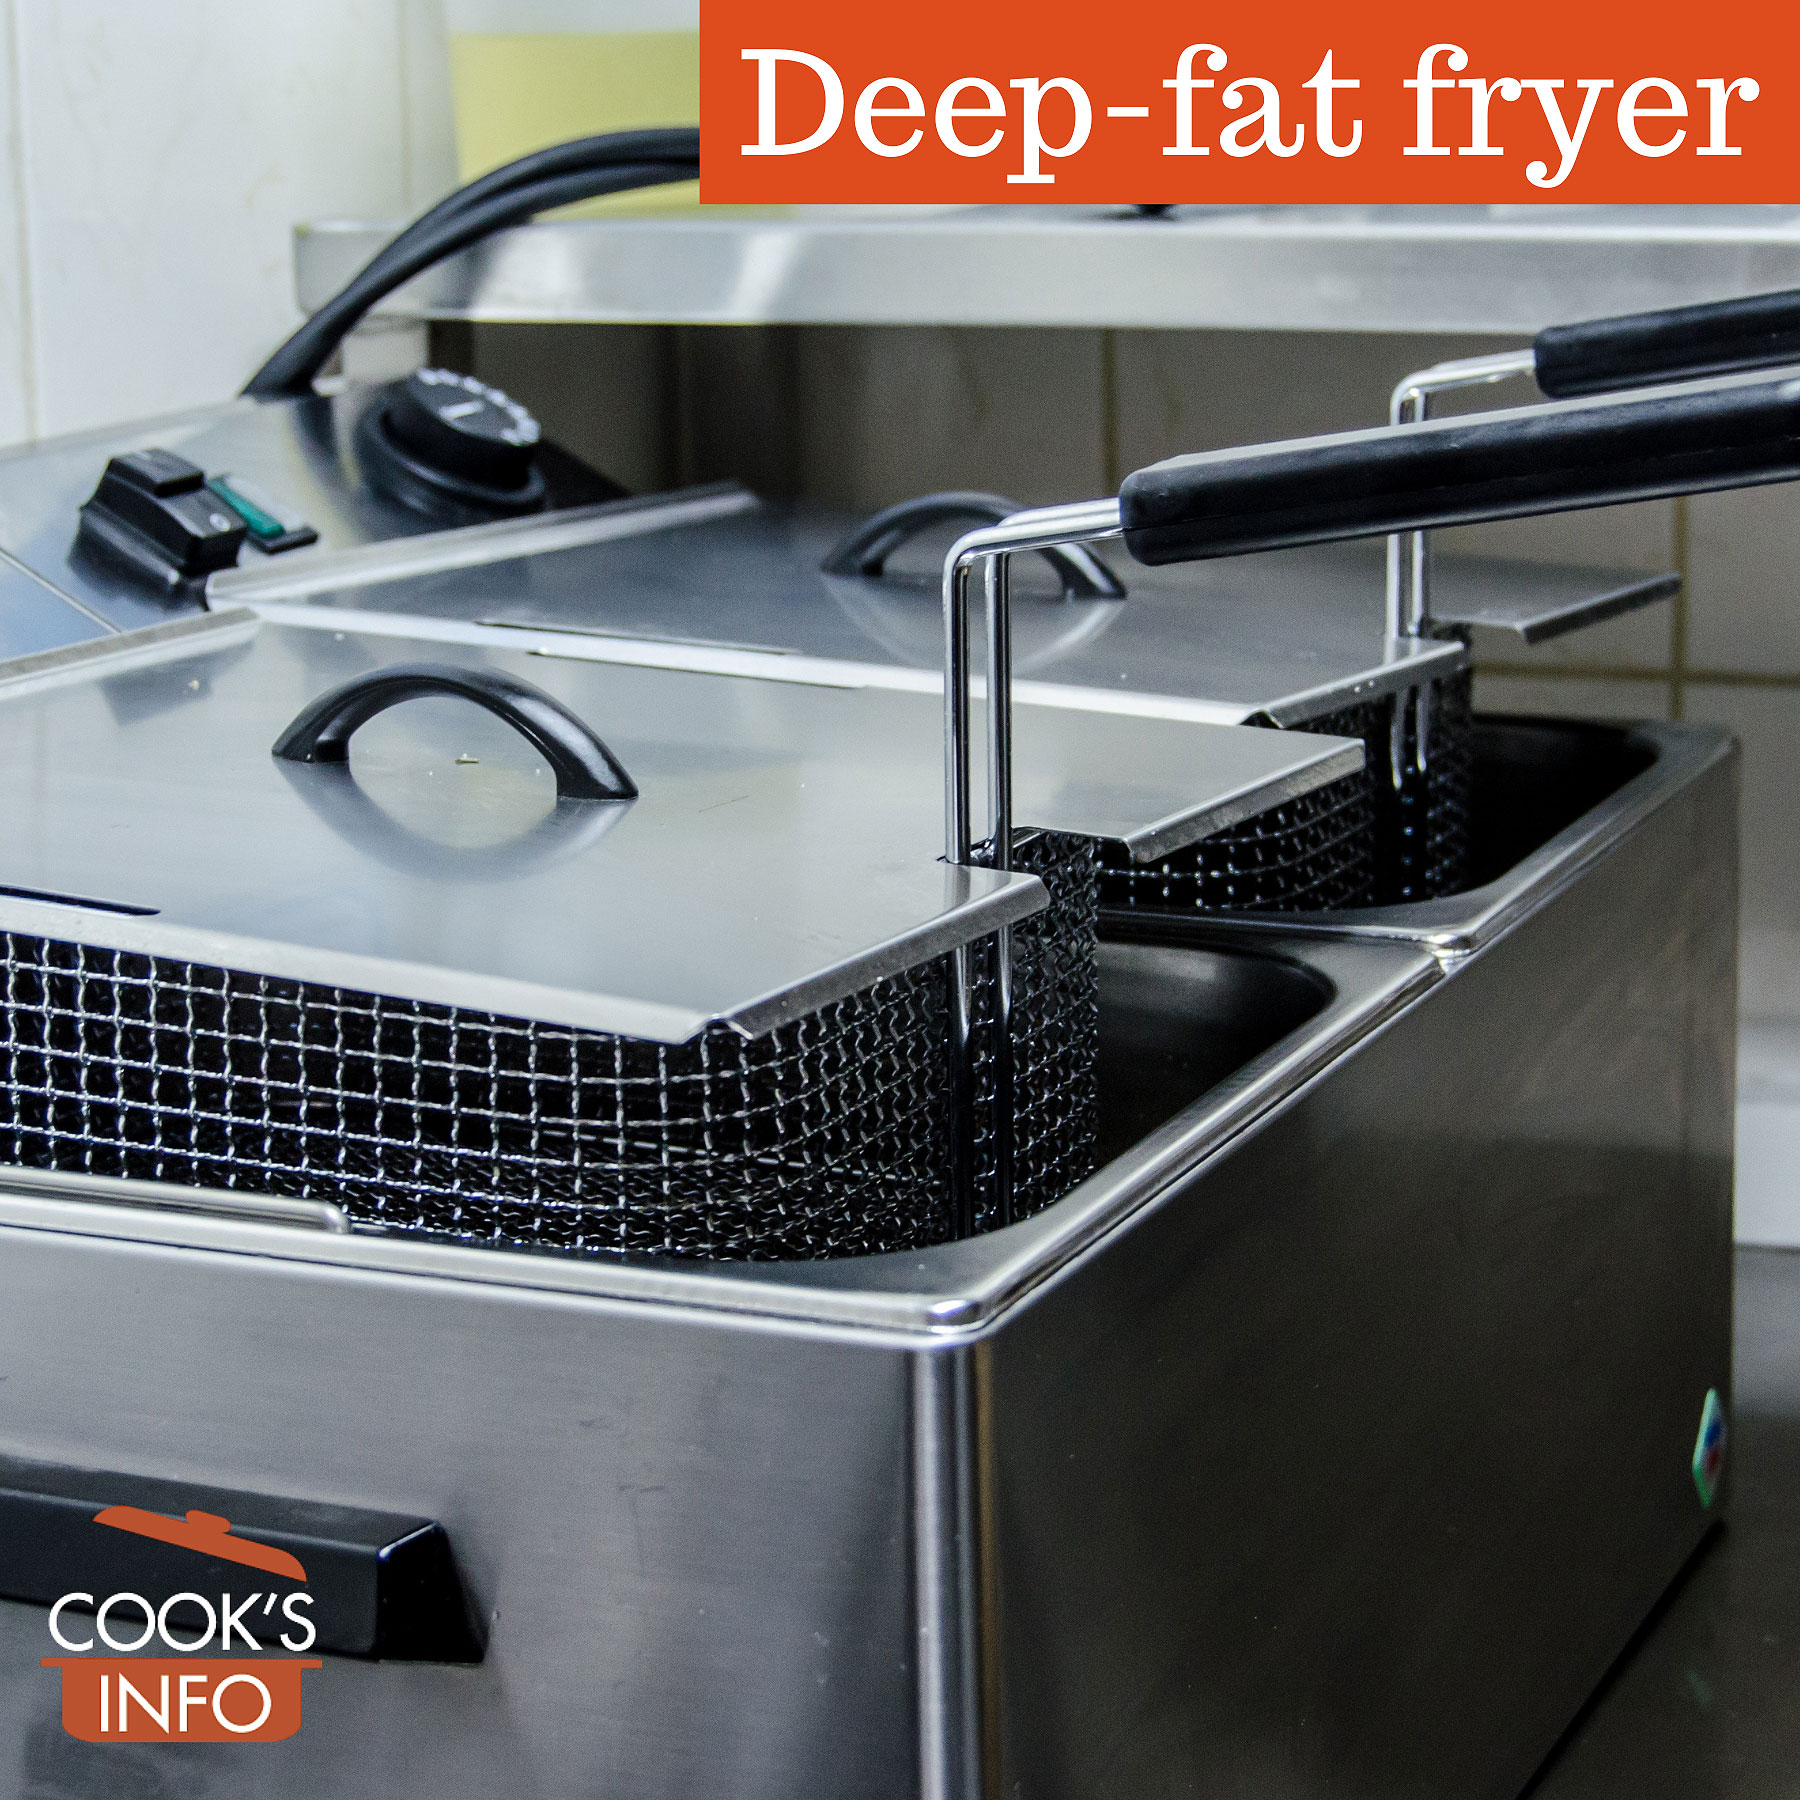 Deep-fat fryer